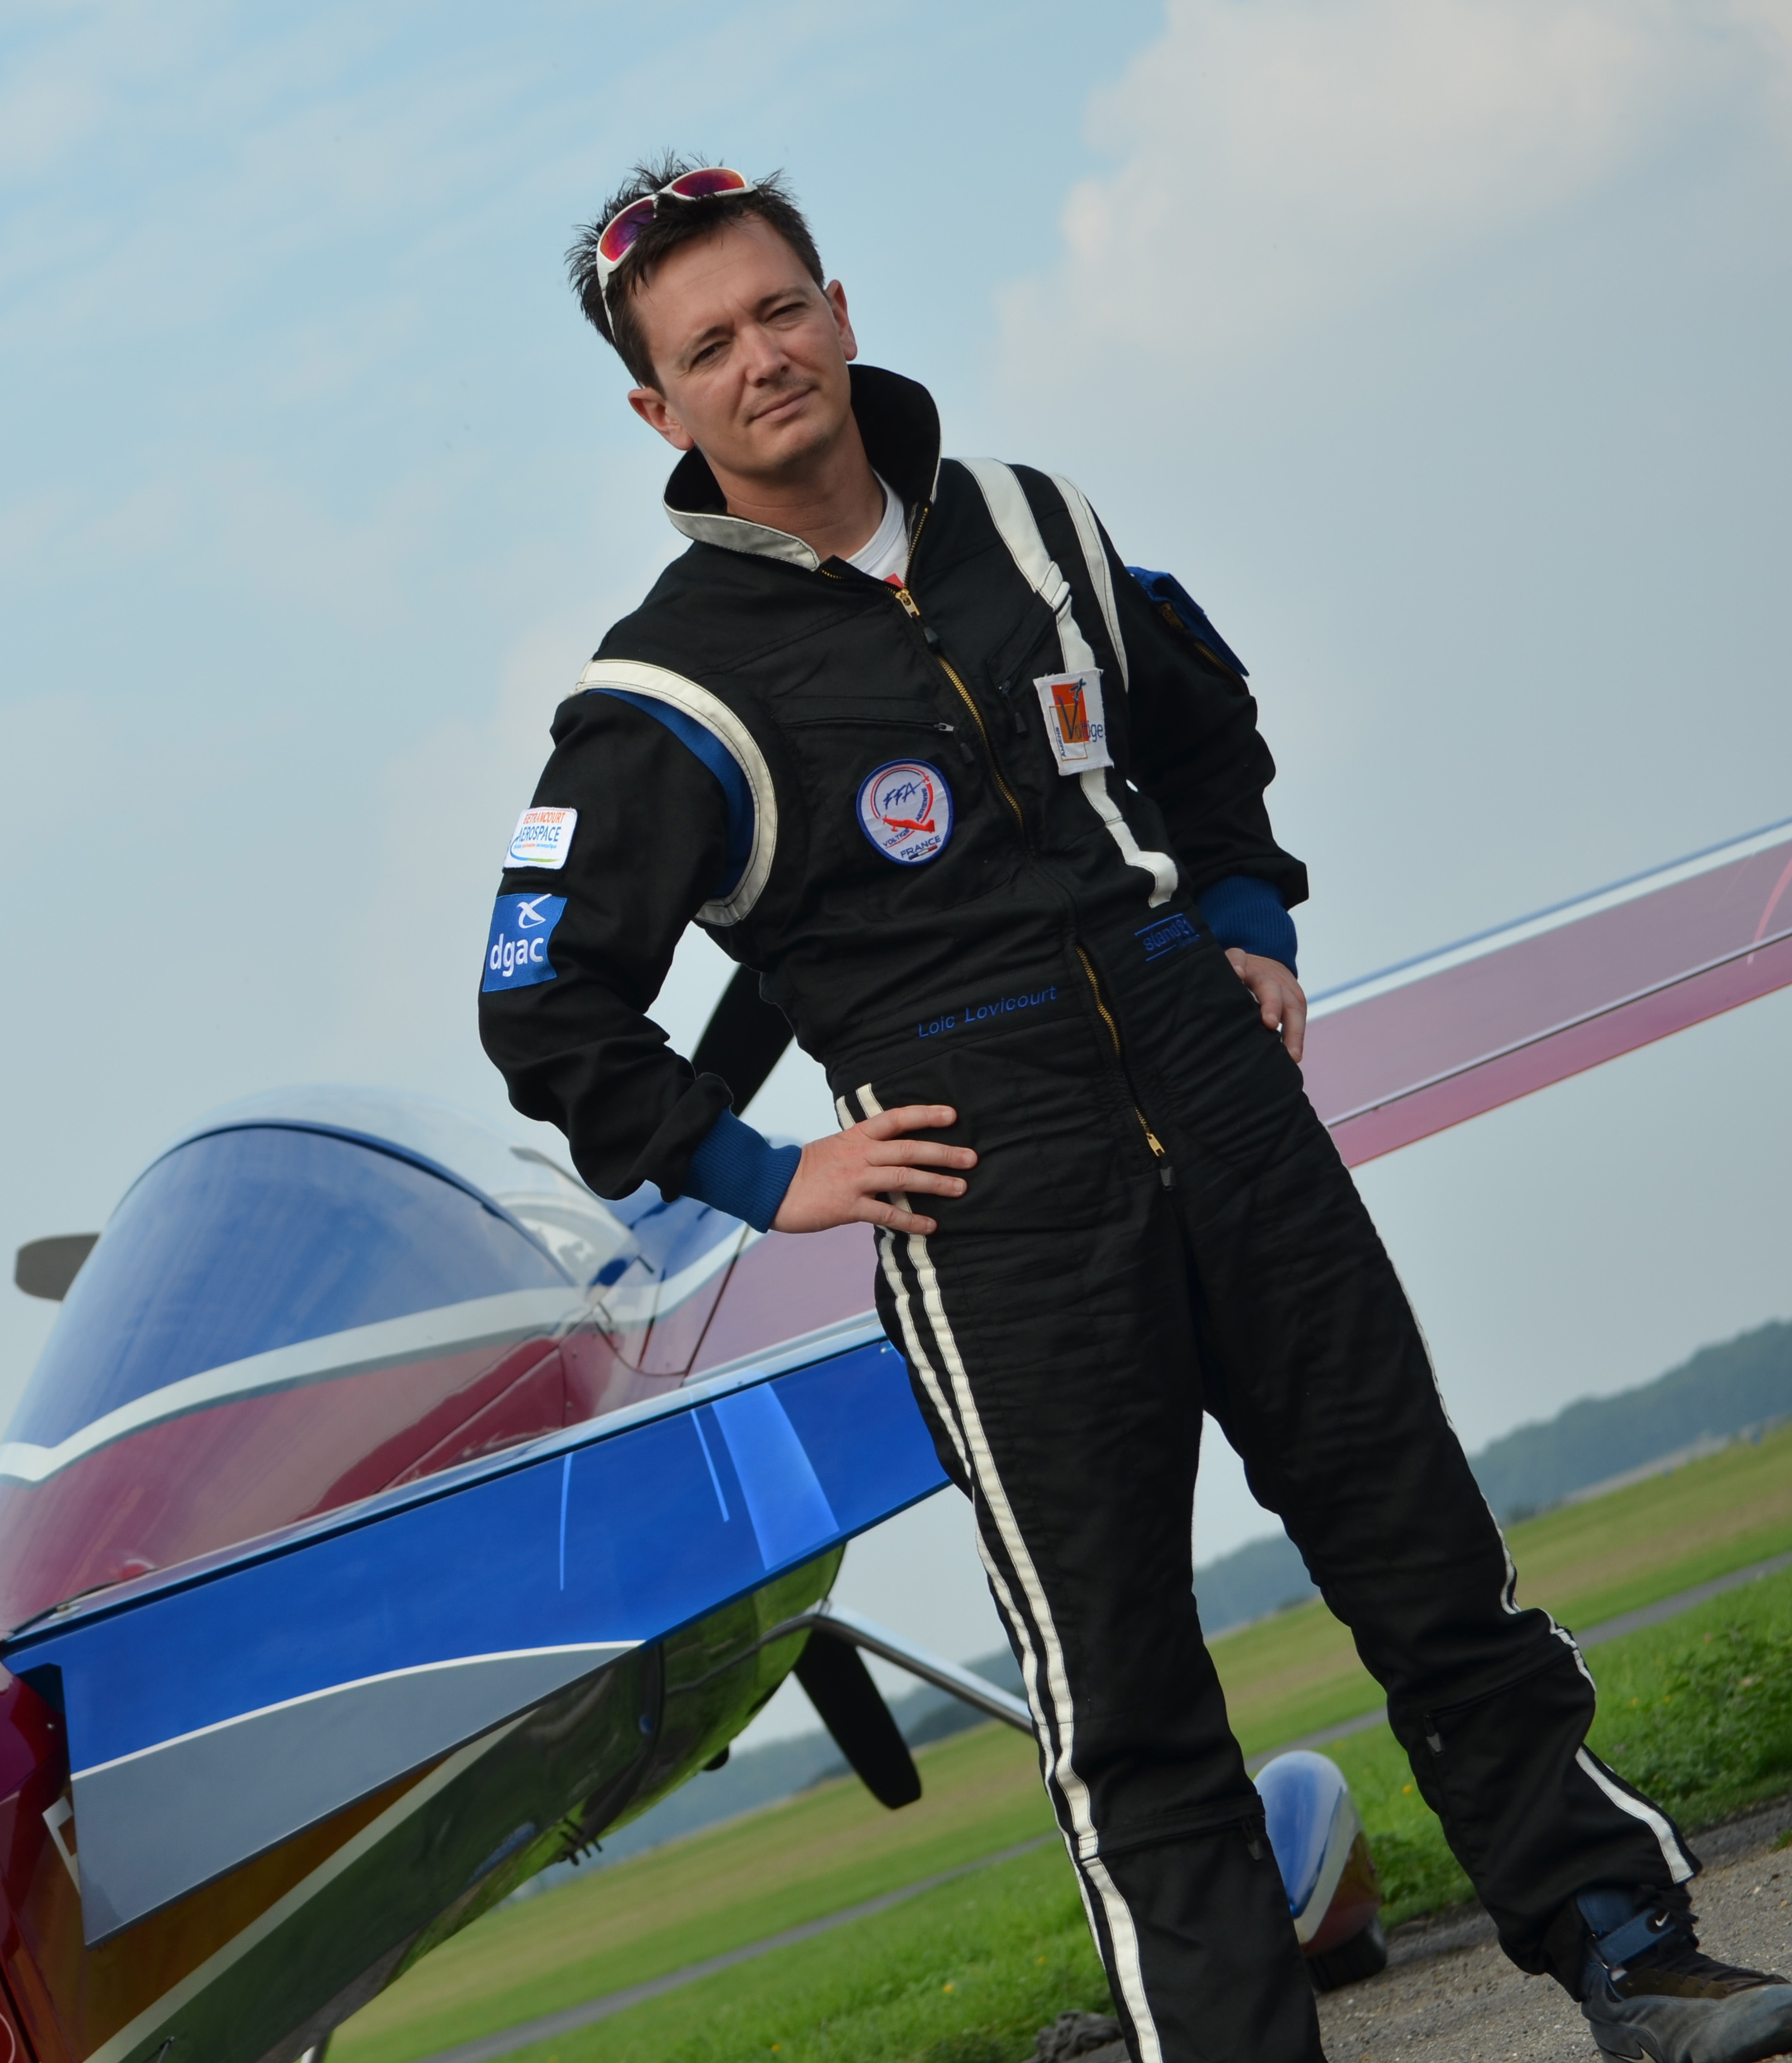 Customized aerobatics suit